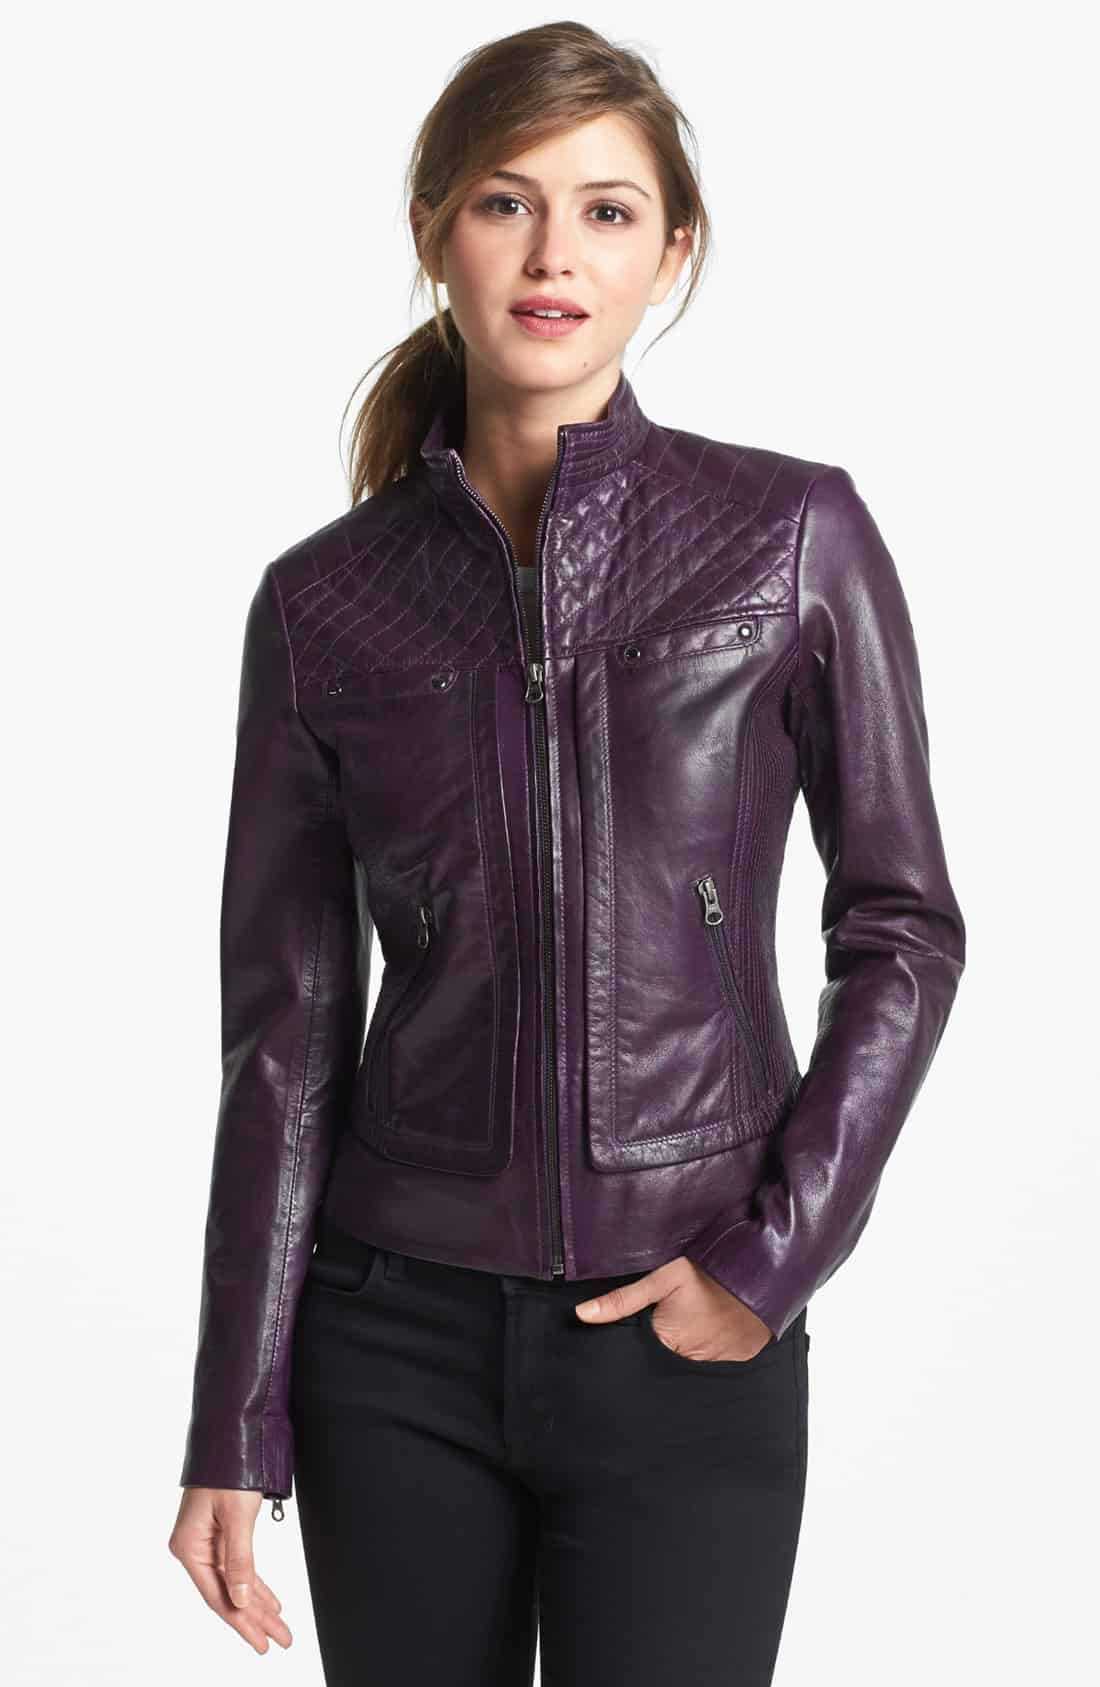 Women&39s leather jacket trends spring 2016 – DRESS TRENDS